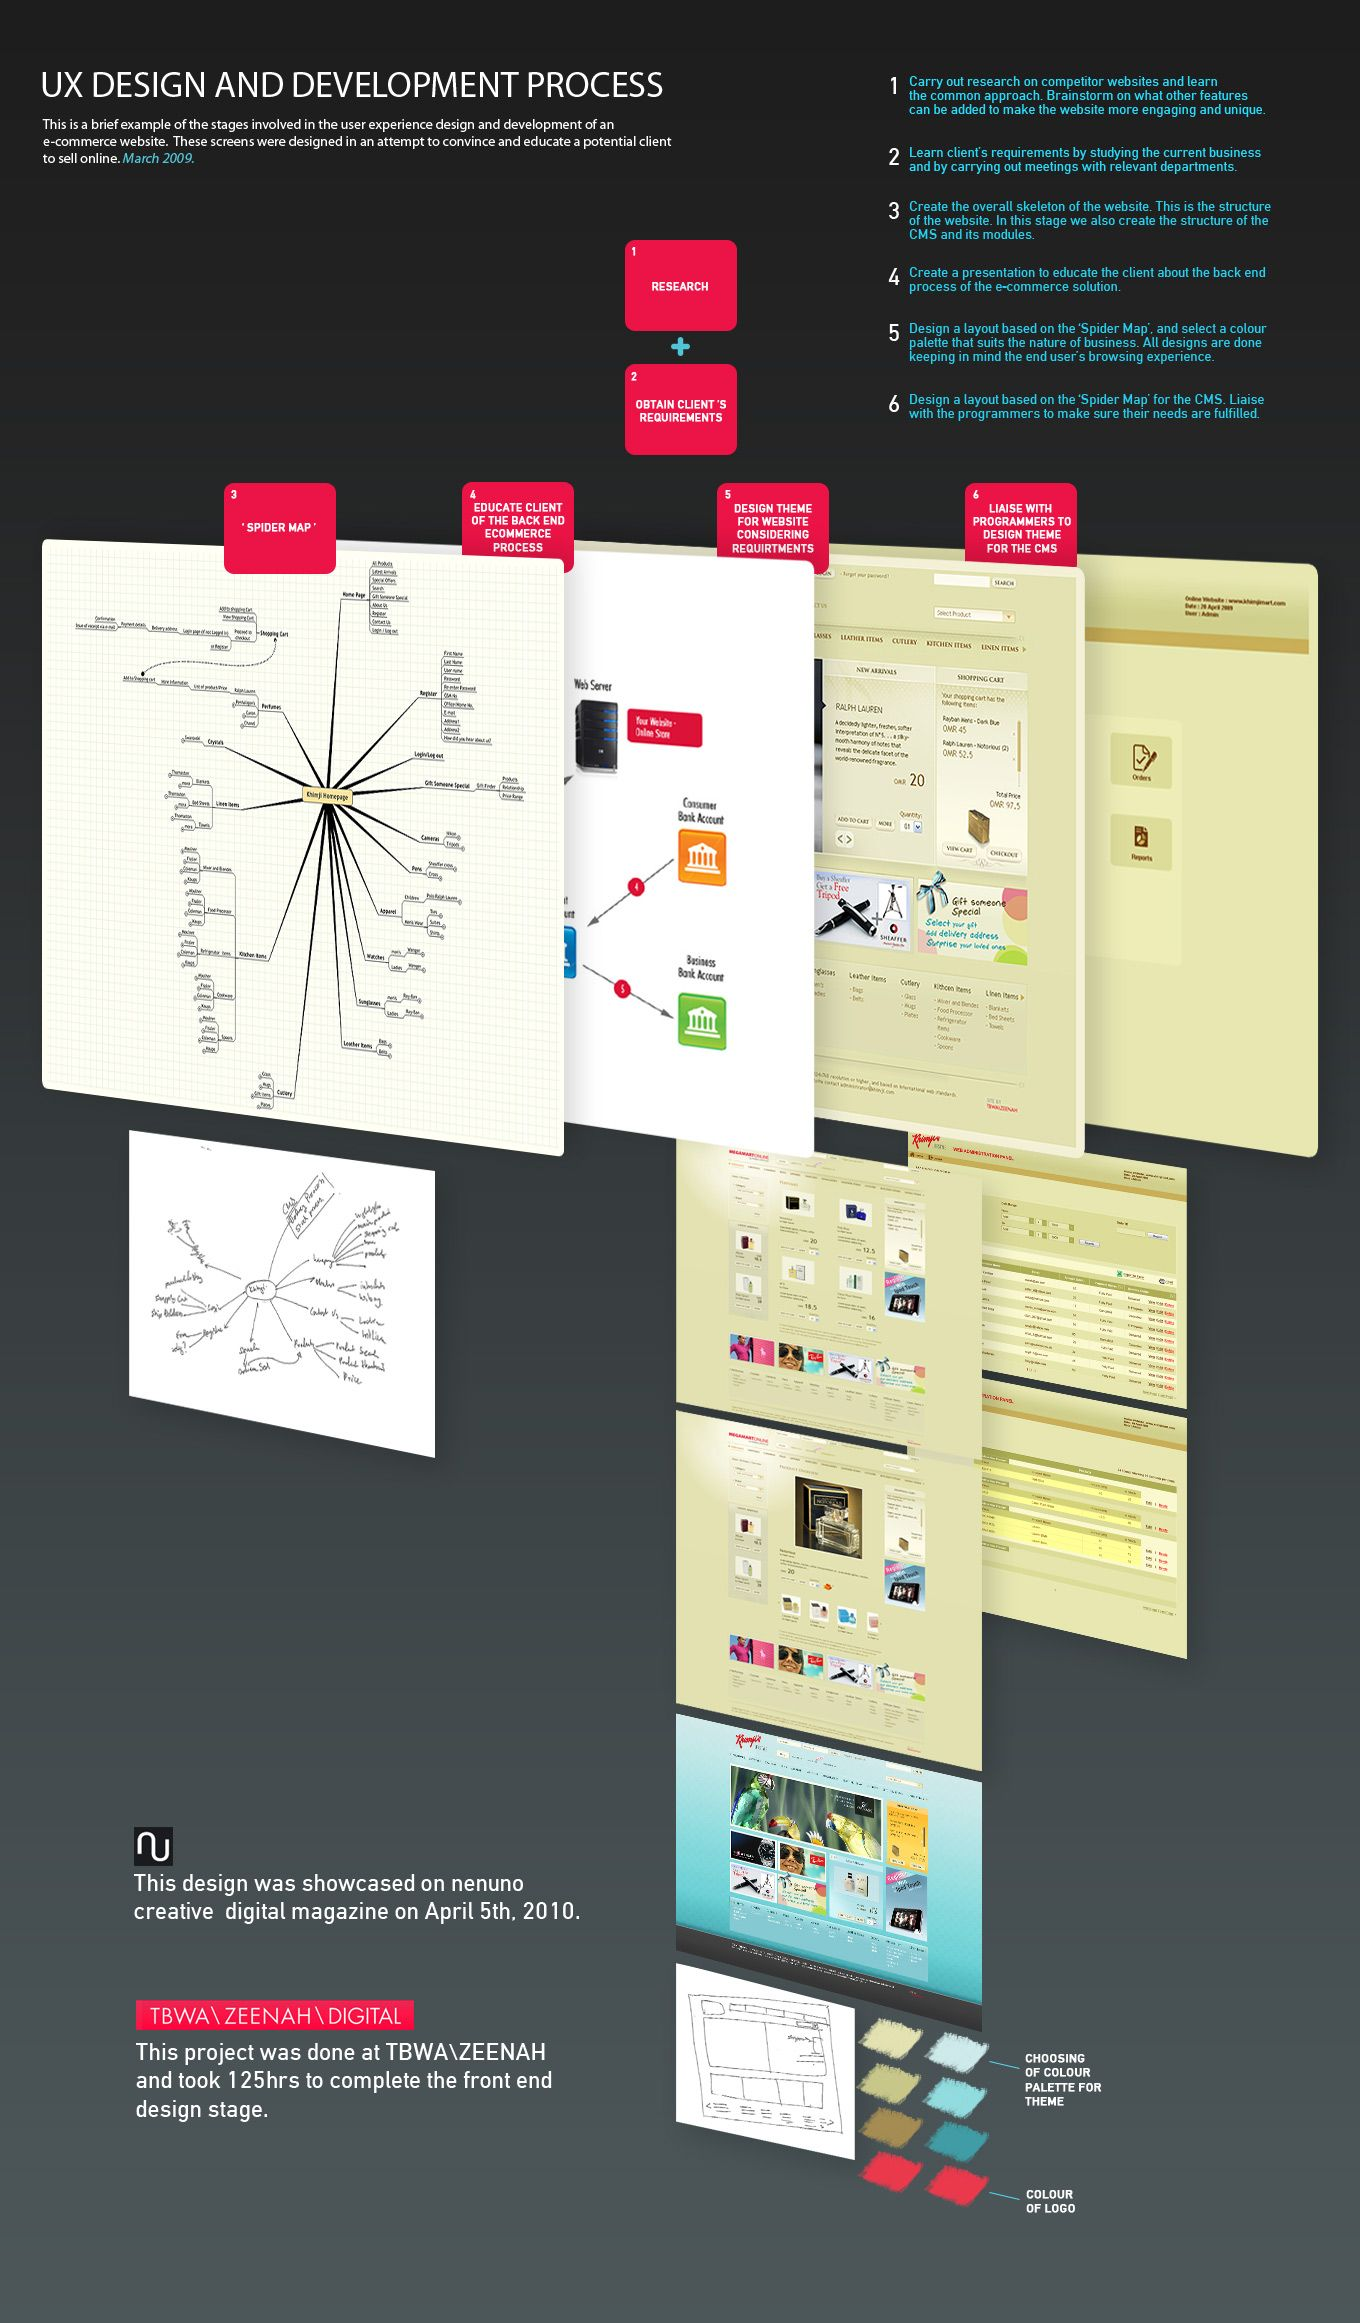 Pin By Doc Holladay On Ux Patterns Process Interactive Design Ux Design Process Design Thinking Process